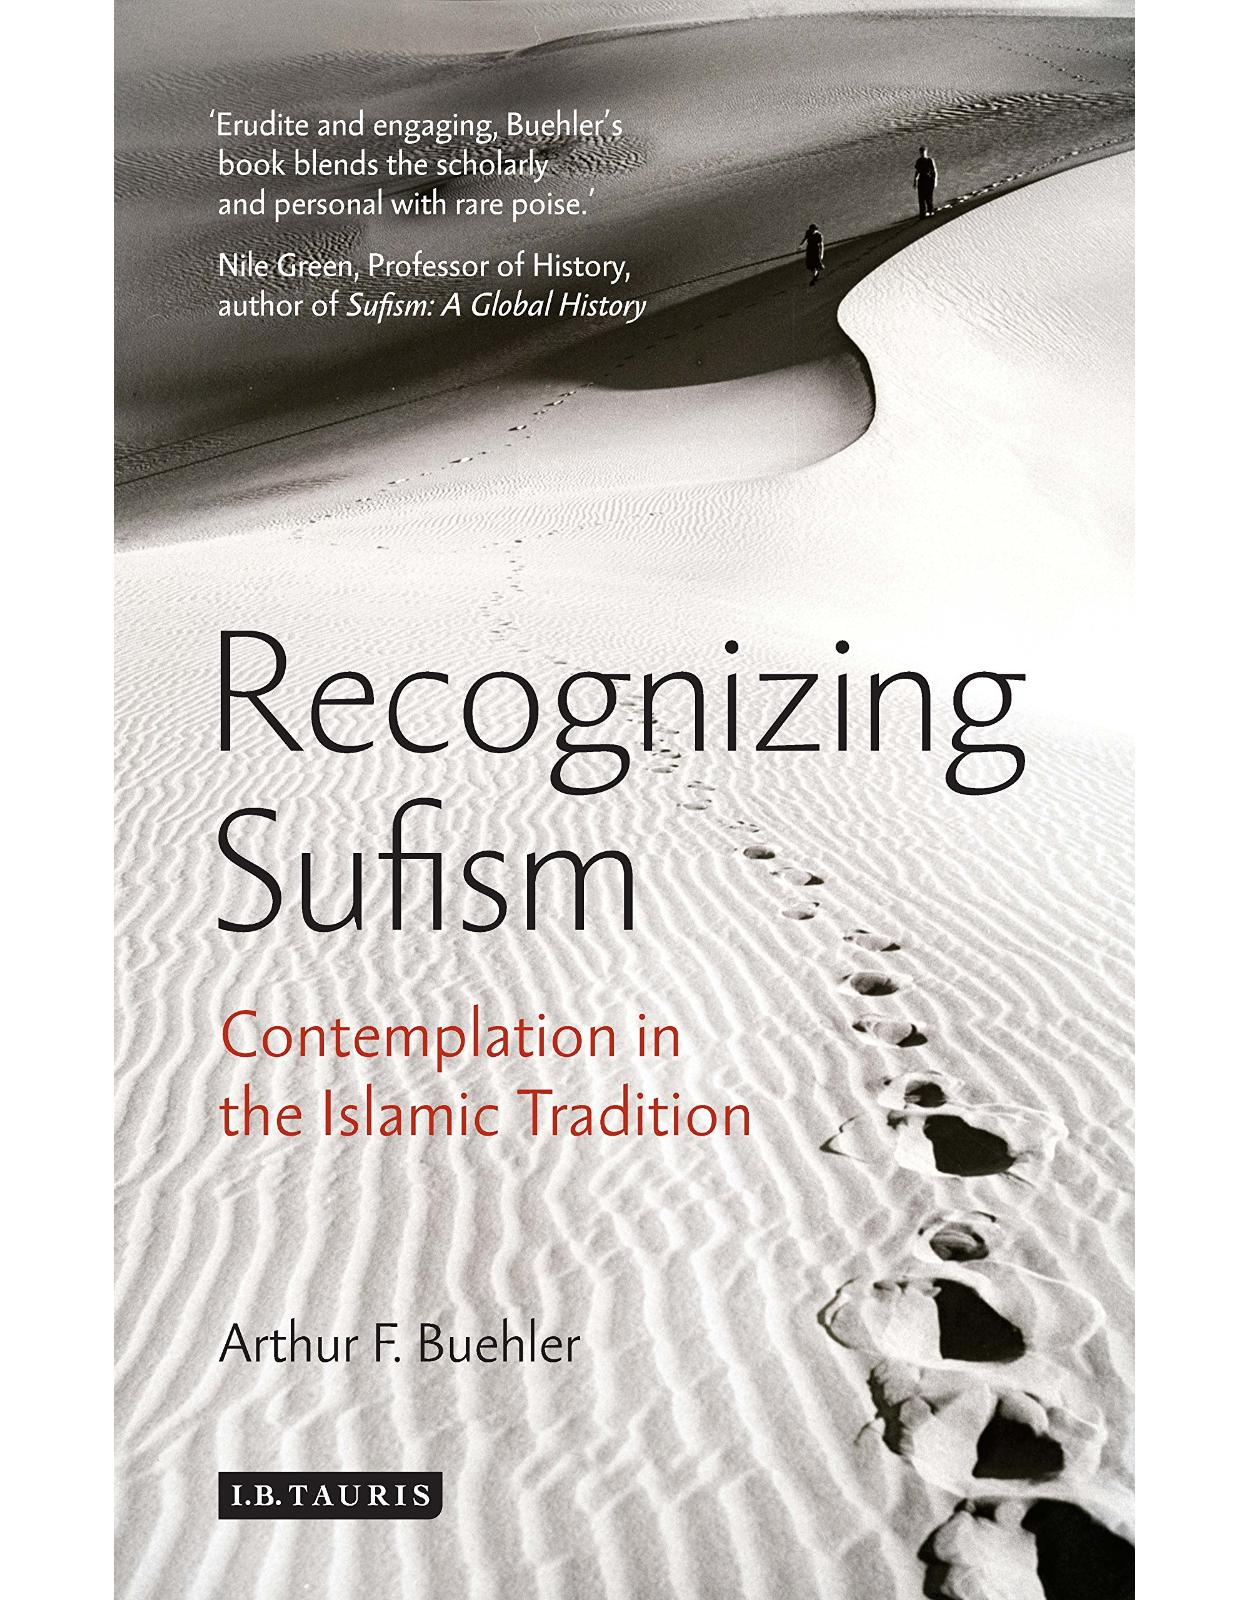 Recognizing Sufism: Contemplation in the Islamic Tradition